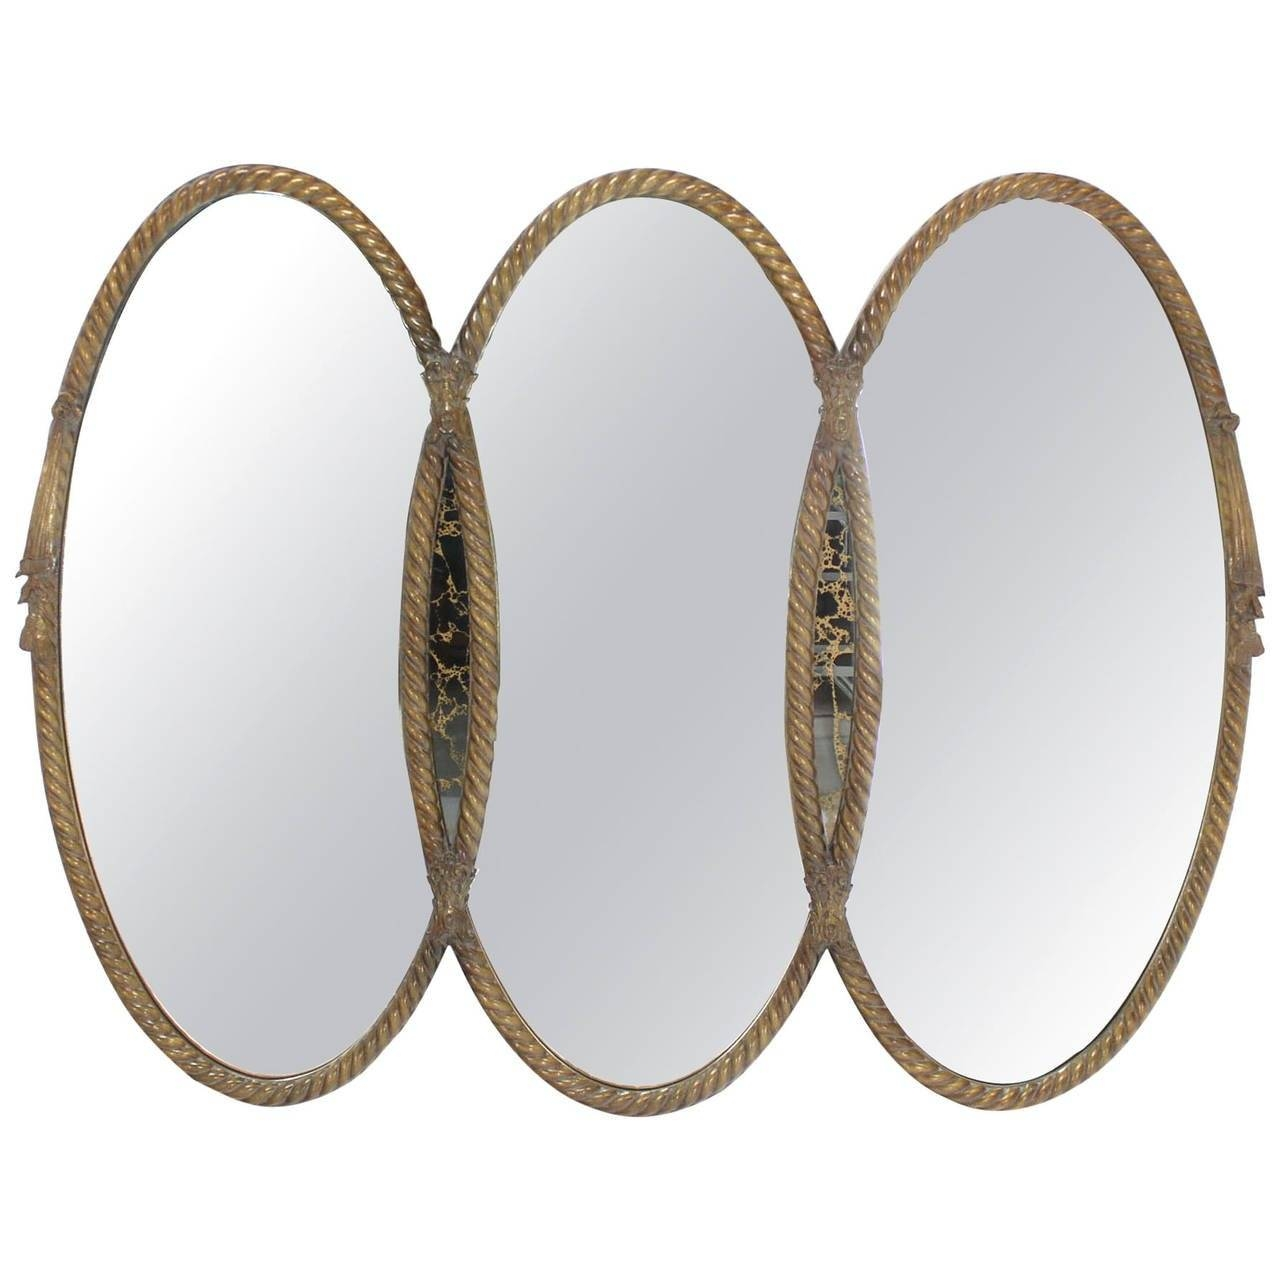 Mid-Century Modern Triple Oval Gold Mirror With Rope Edge Frame intended for Triple Oval Mirrors (Image 13 of 25)